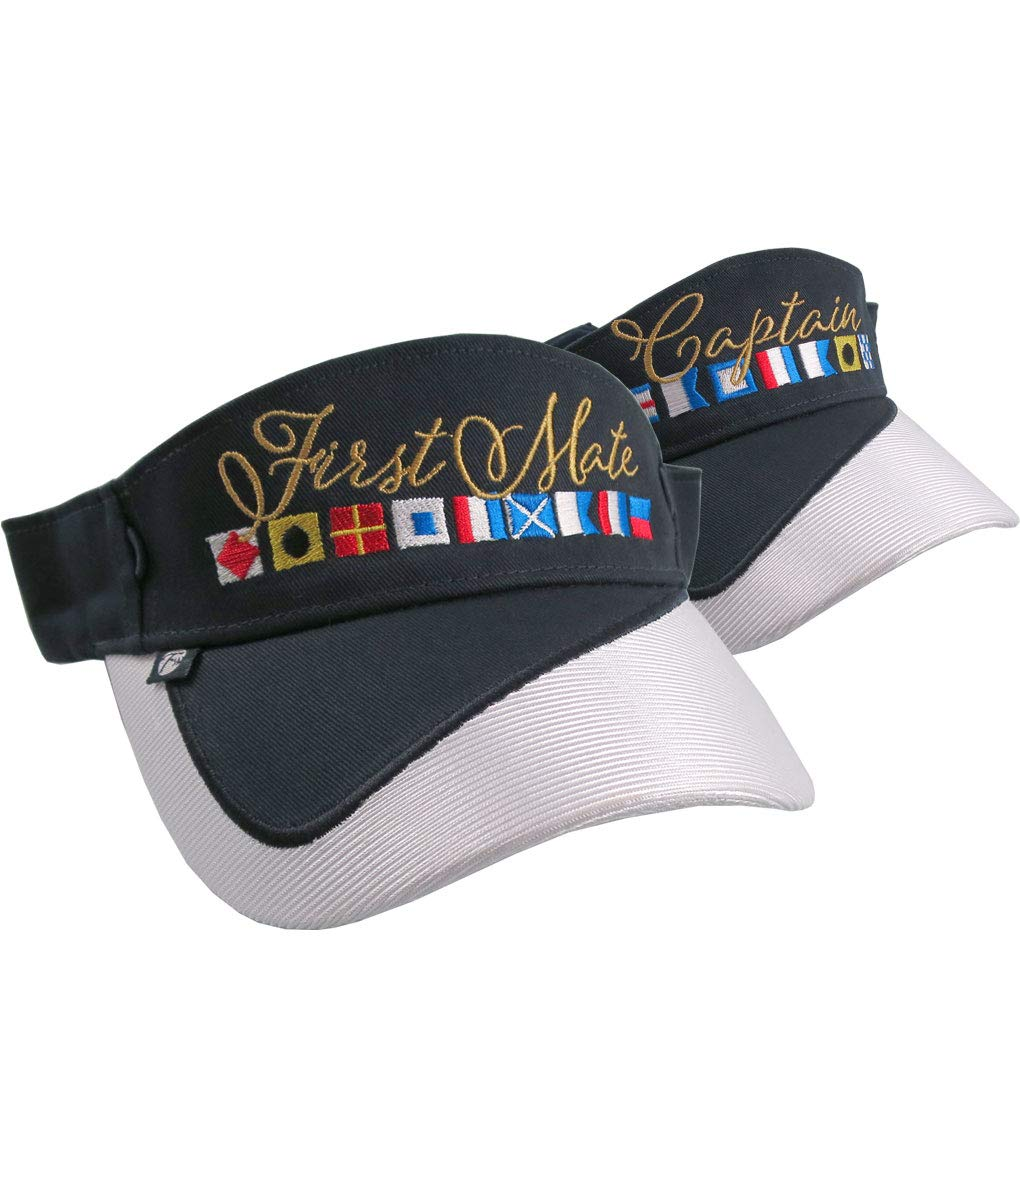 19012e38df6 Amazon.com  Captain and First Mate Nautical Flags Embroidery Couple Navy  Blue and White Visors Duo Adjustable Elegant Fashion Sun Hats  Handmade